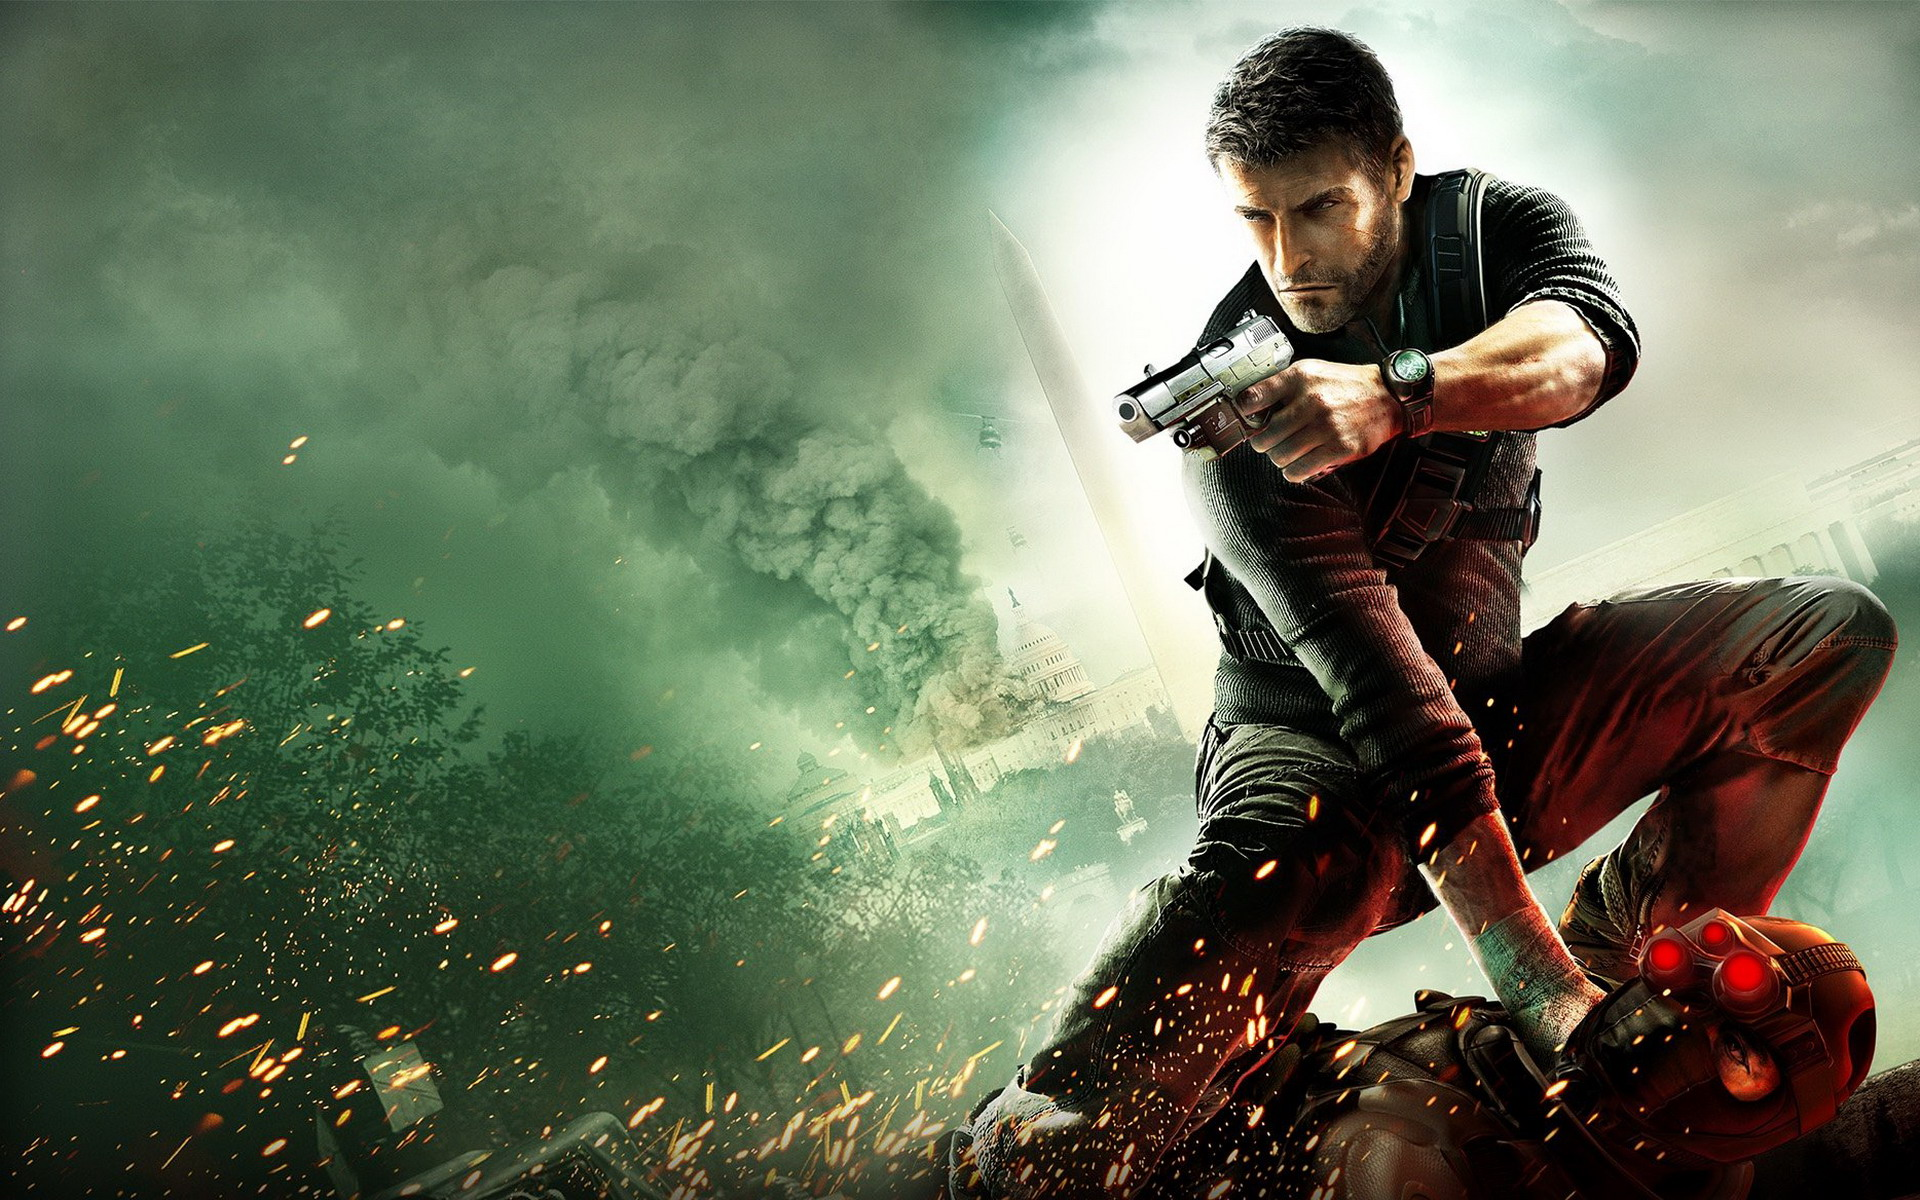 Splinter Cell Conviction 2010 Game Wallpapers HD Wallpapers 1920x1200